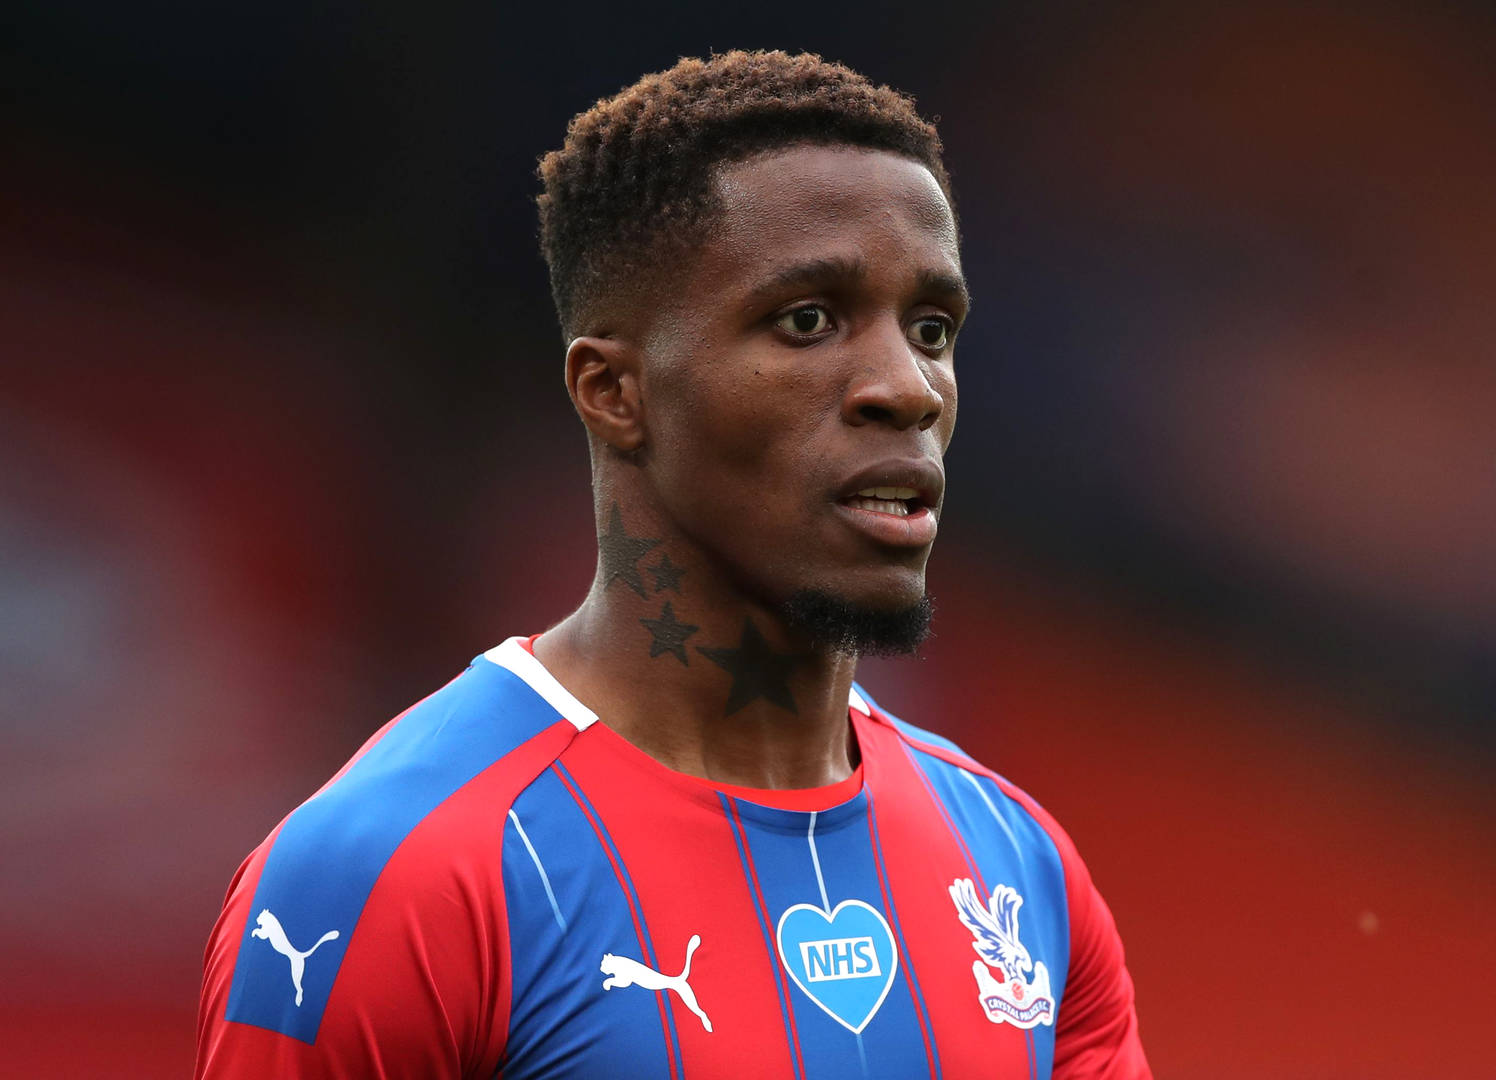 Palace player Zaha racially abused; 12-year-old arrested